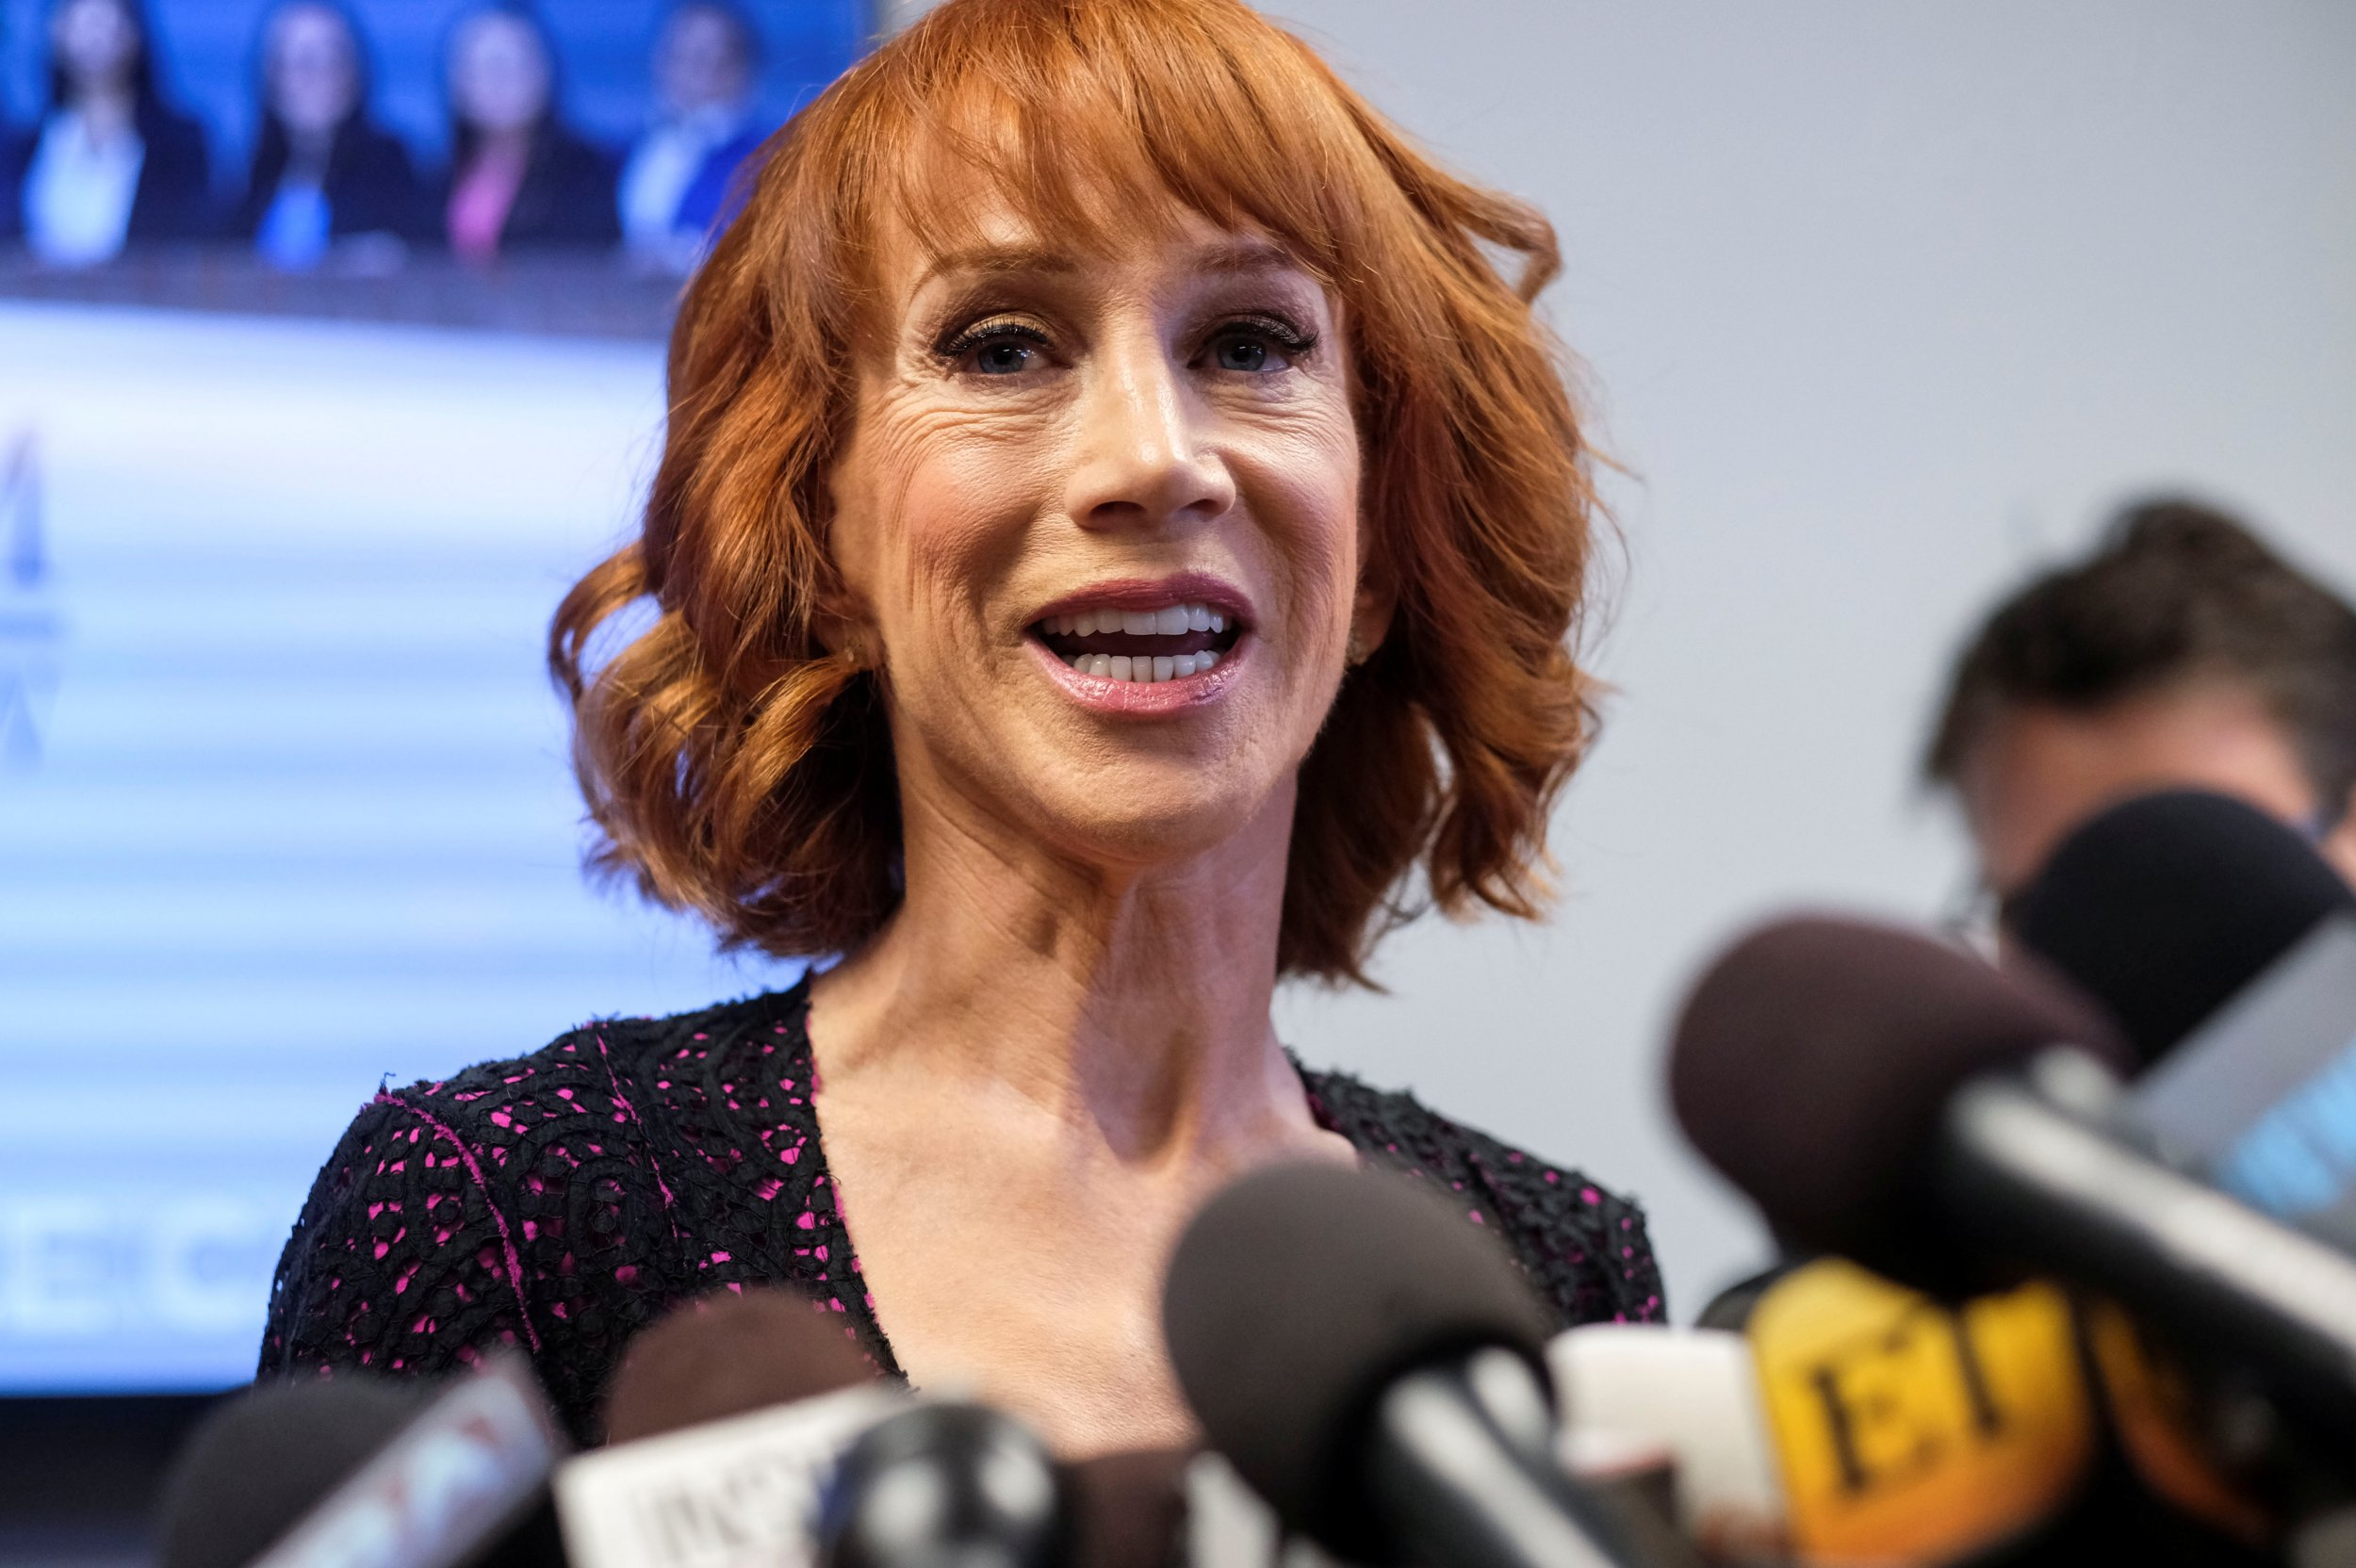 2017-06-02T171145Z_1916508902_RC173F6A9FC0_RTRMADP_3_USA-TRUMP-KATHYGRIFFIN